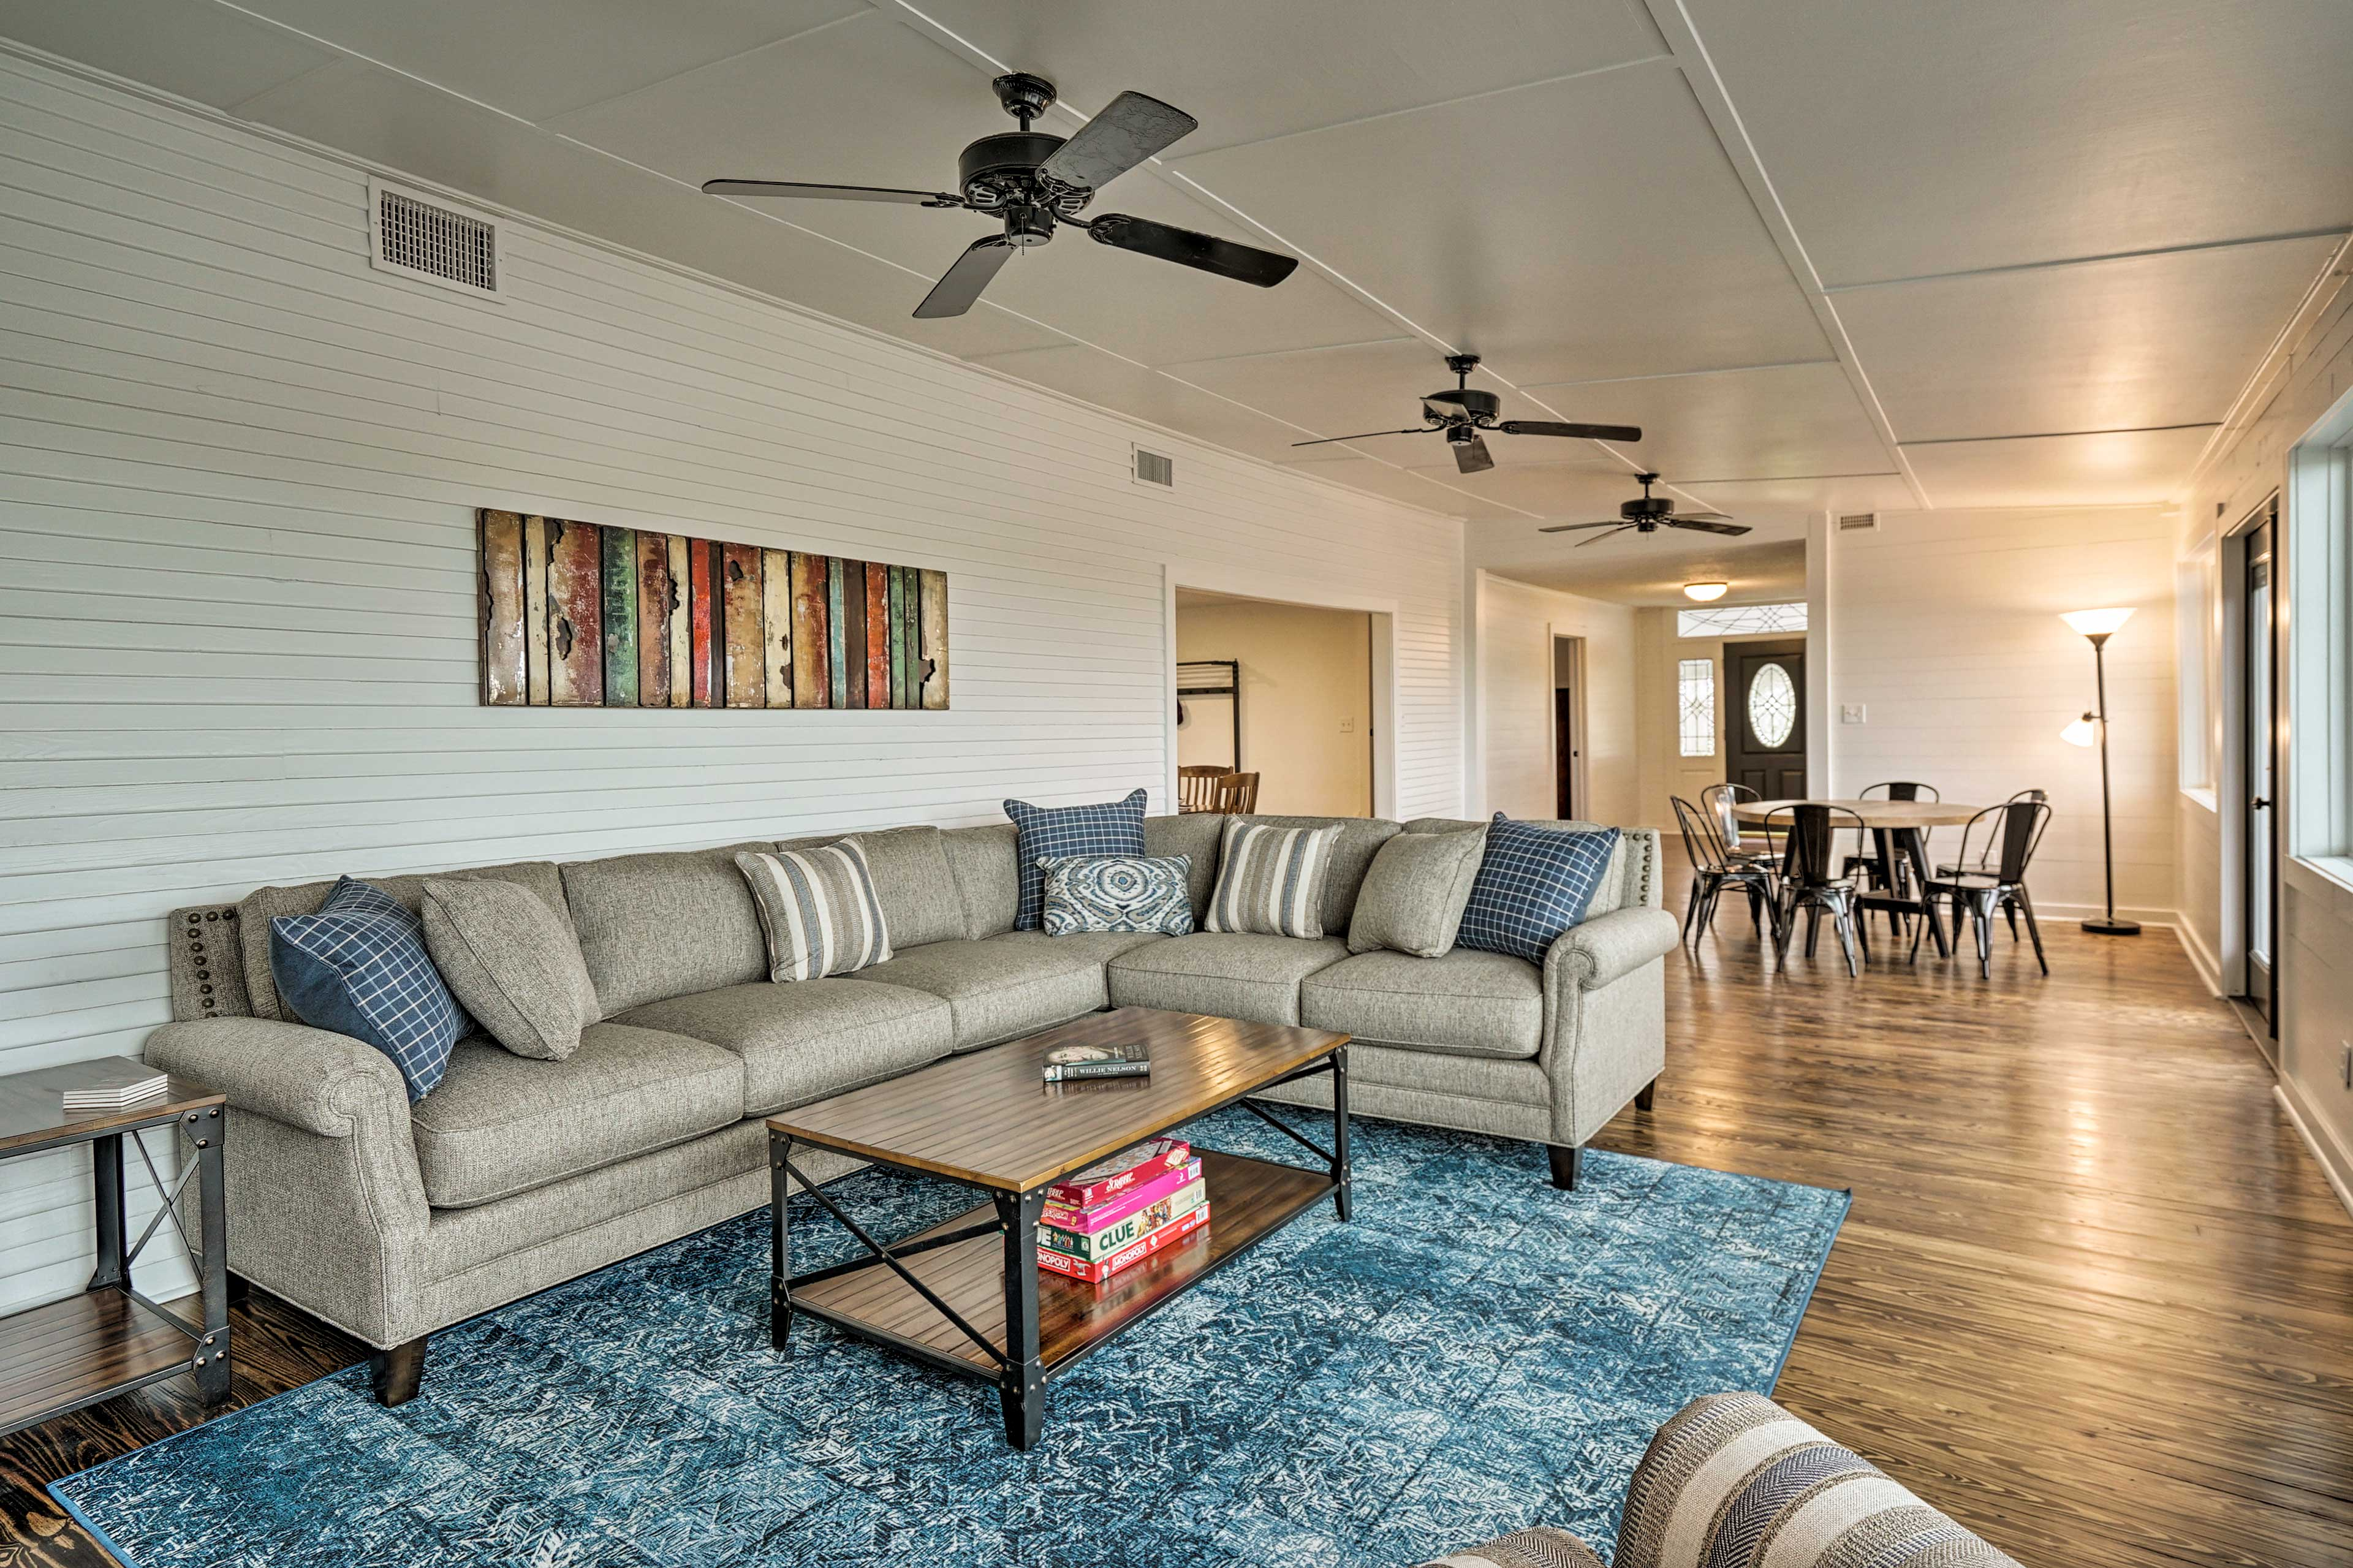 The living room opens into a large dining area.